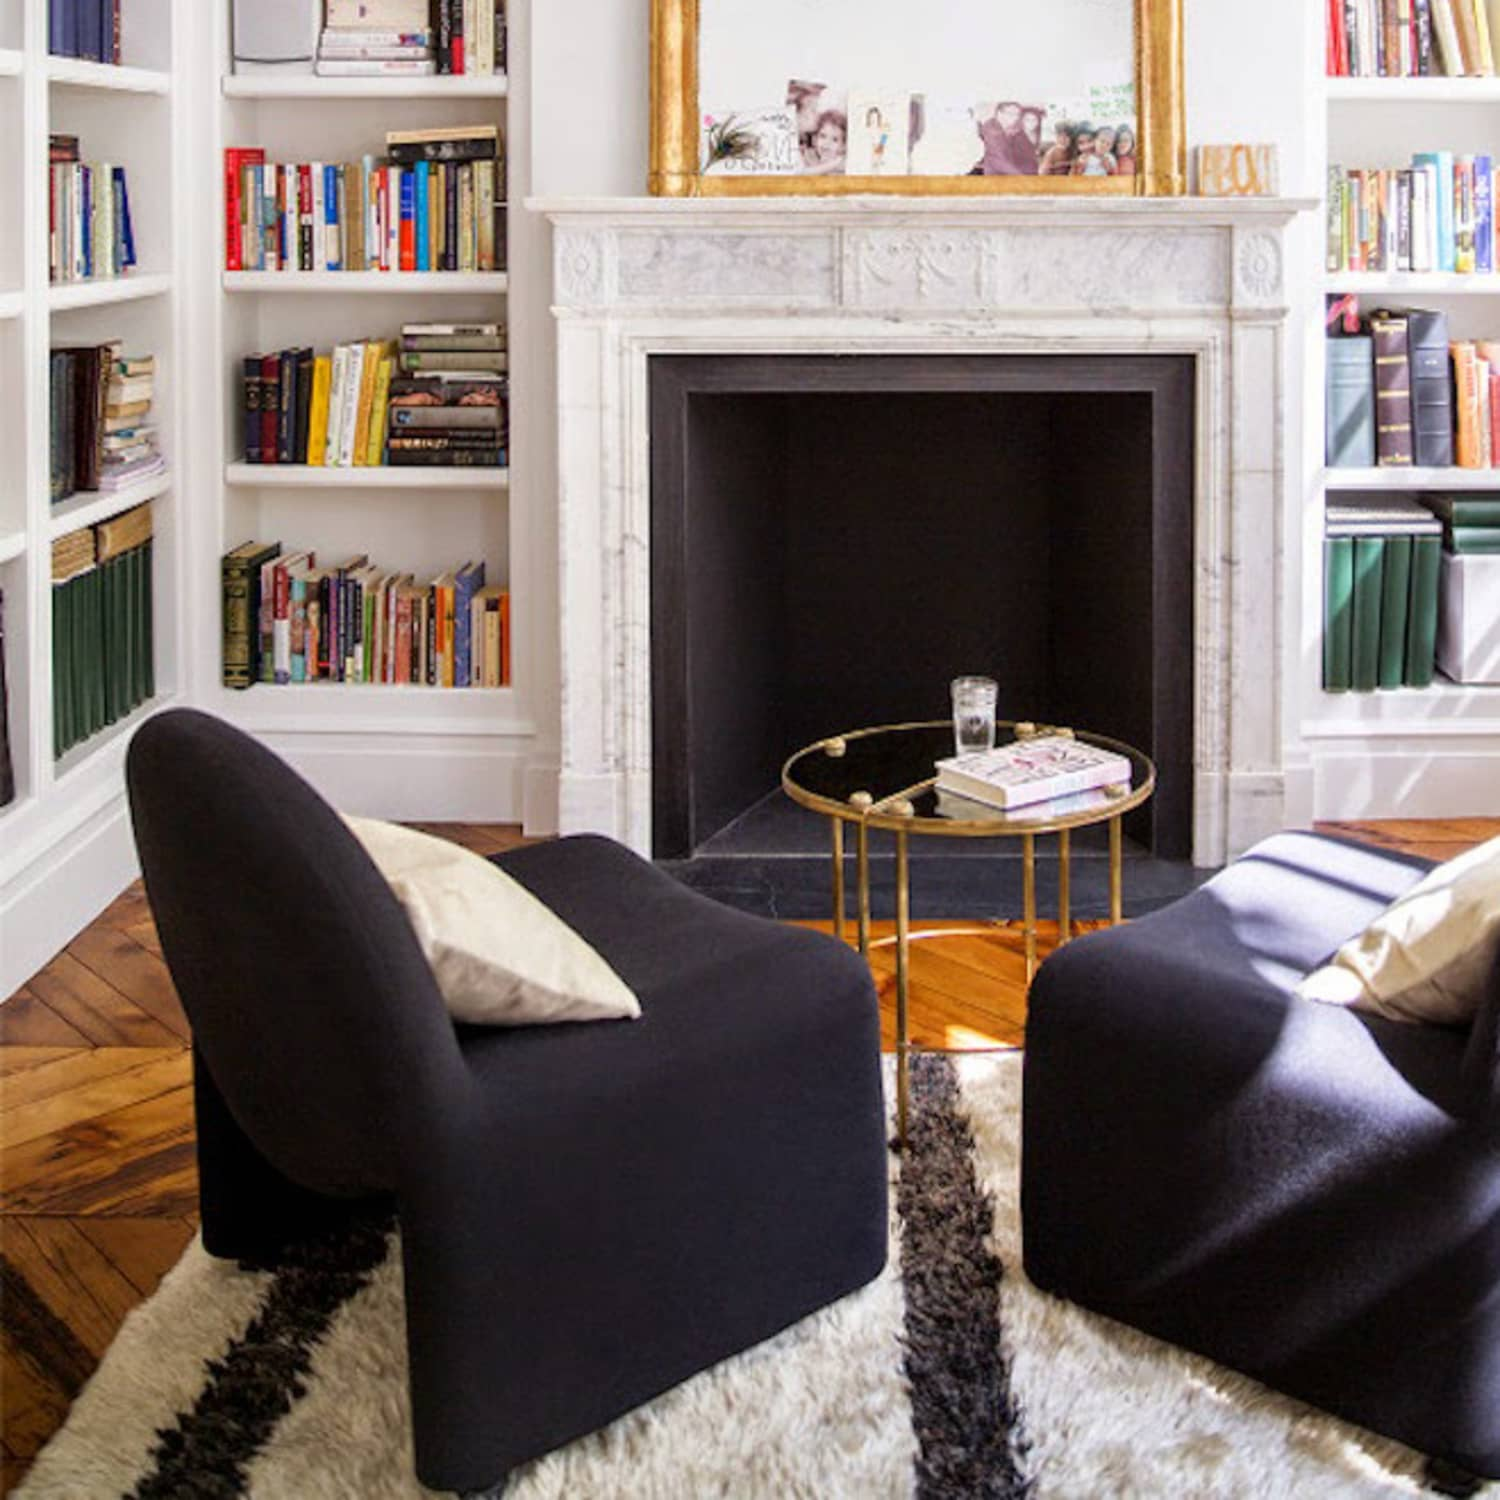 How to Set Up Your Living Room (Without a Focus on the TV